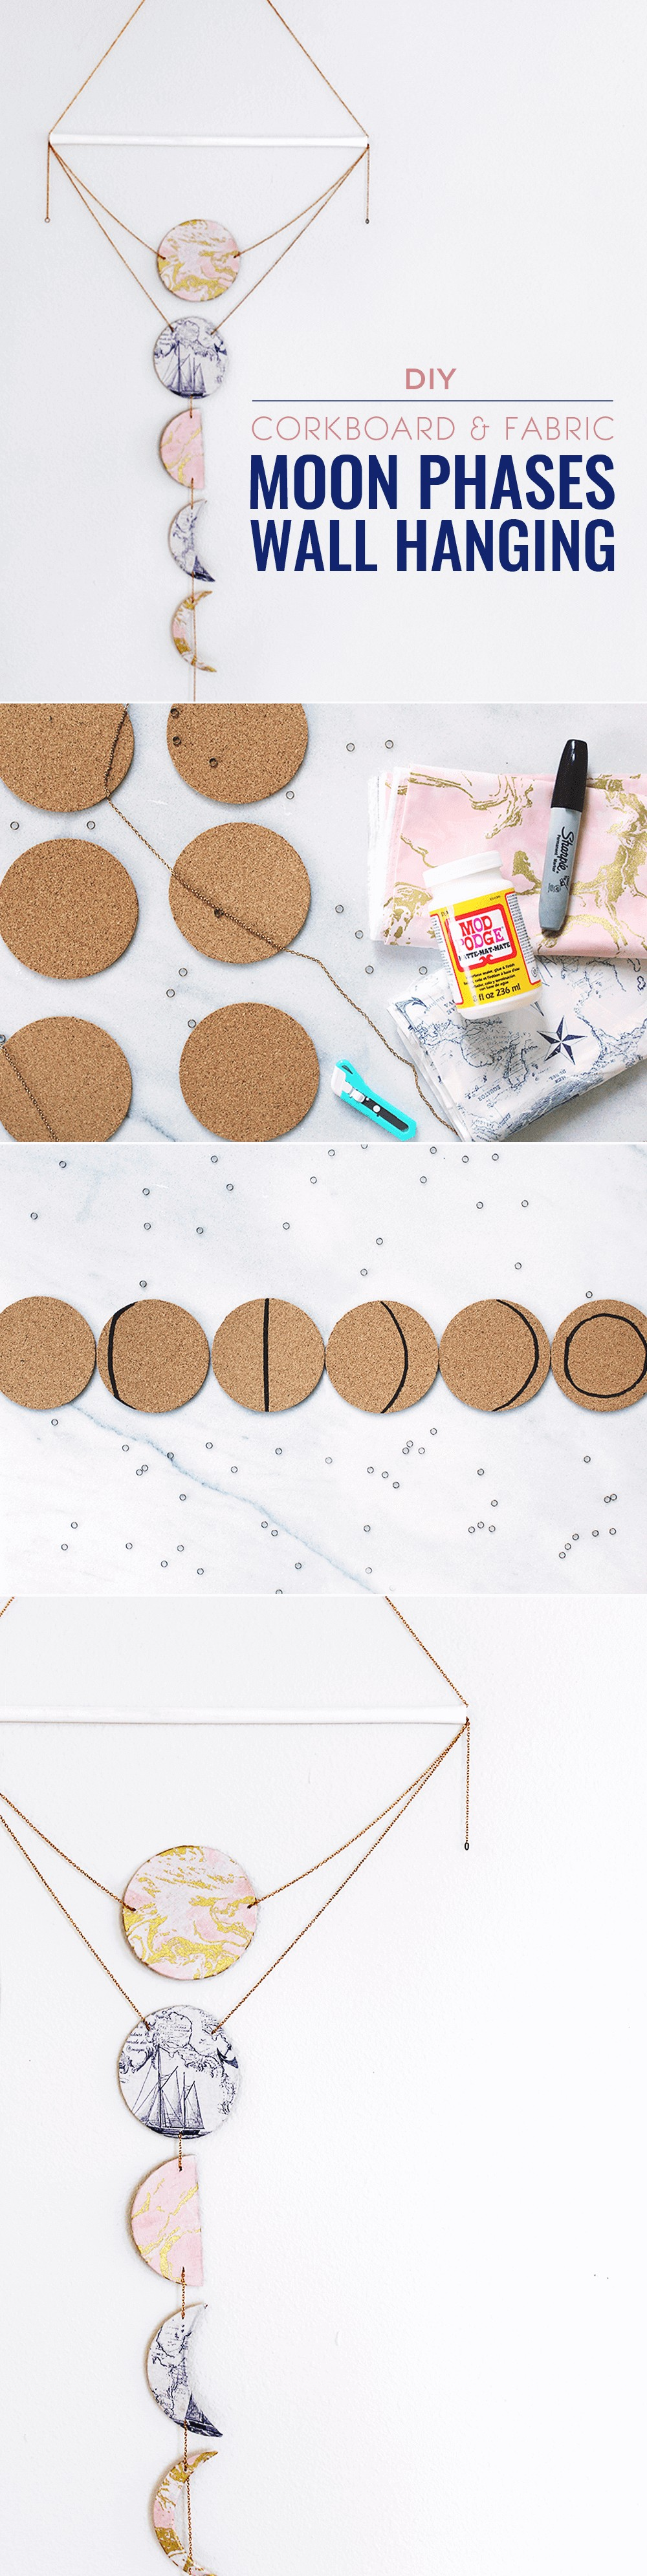 DIY Moon Phases Wall Hanging Pinterest